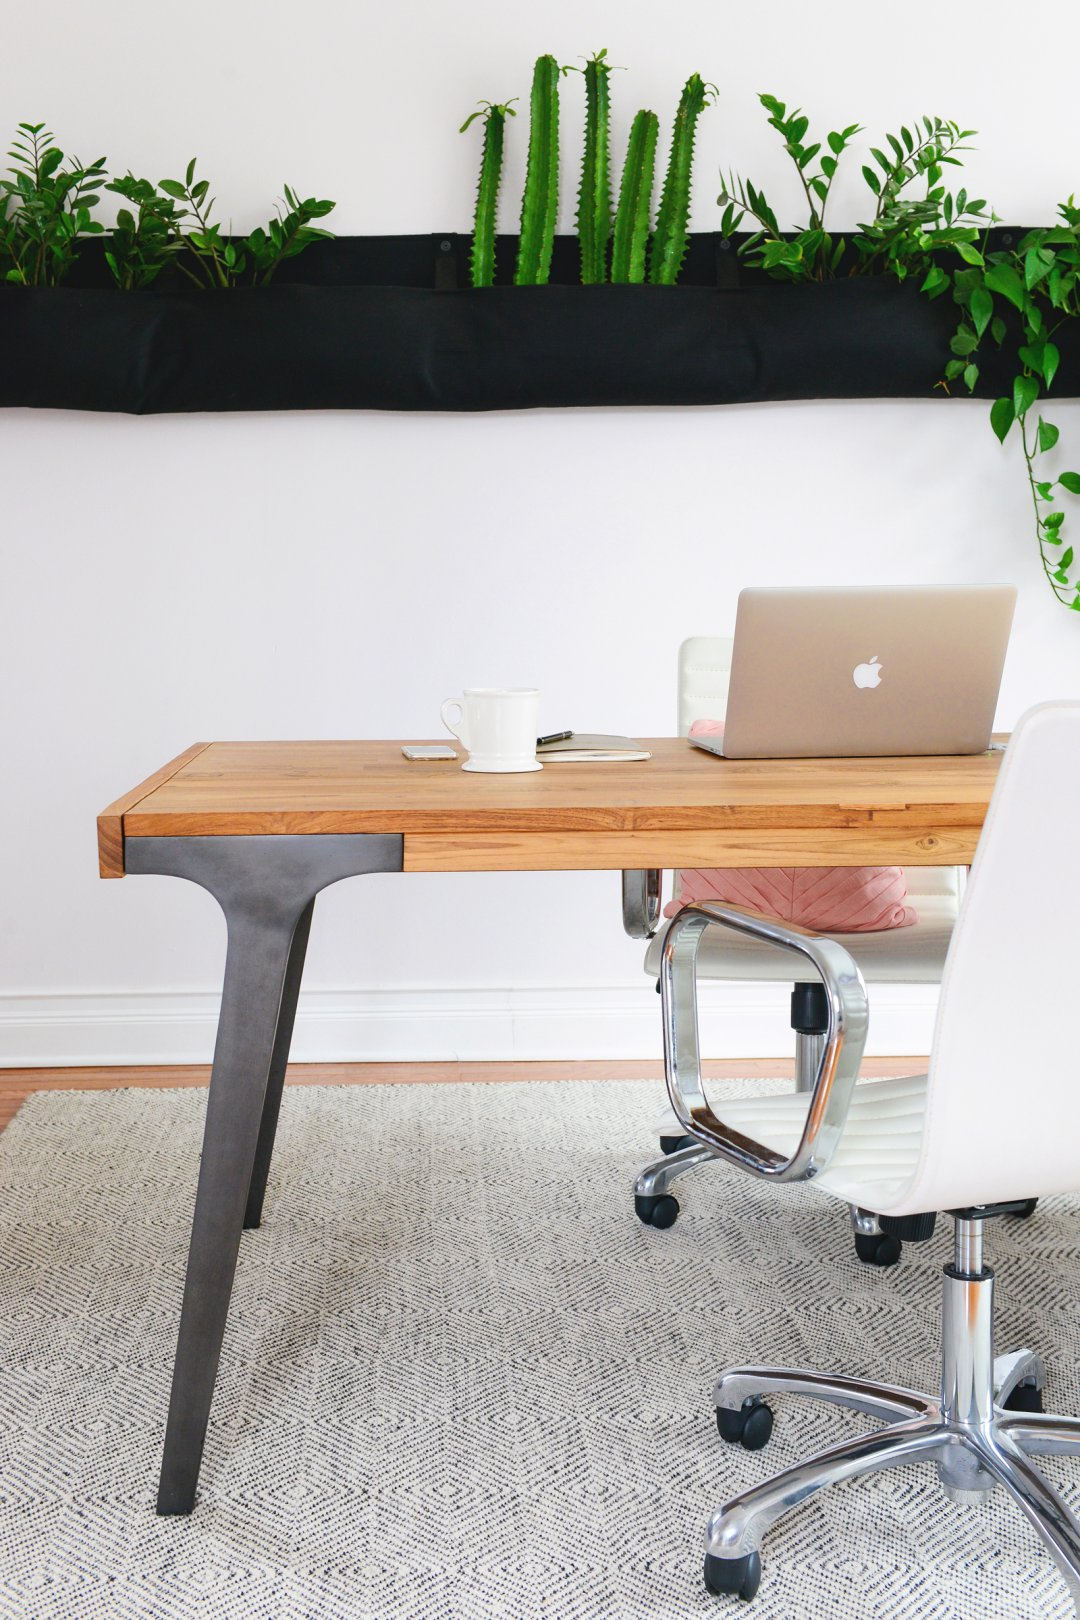 two chairs surround a large wood table with a computer on top and a variety of plants are displayed on a shelf in the background